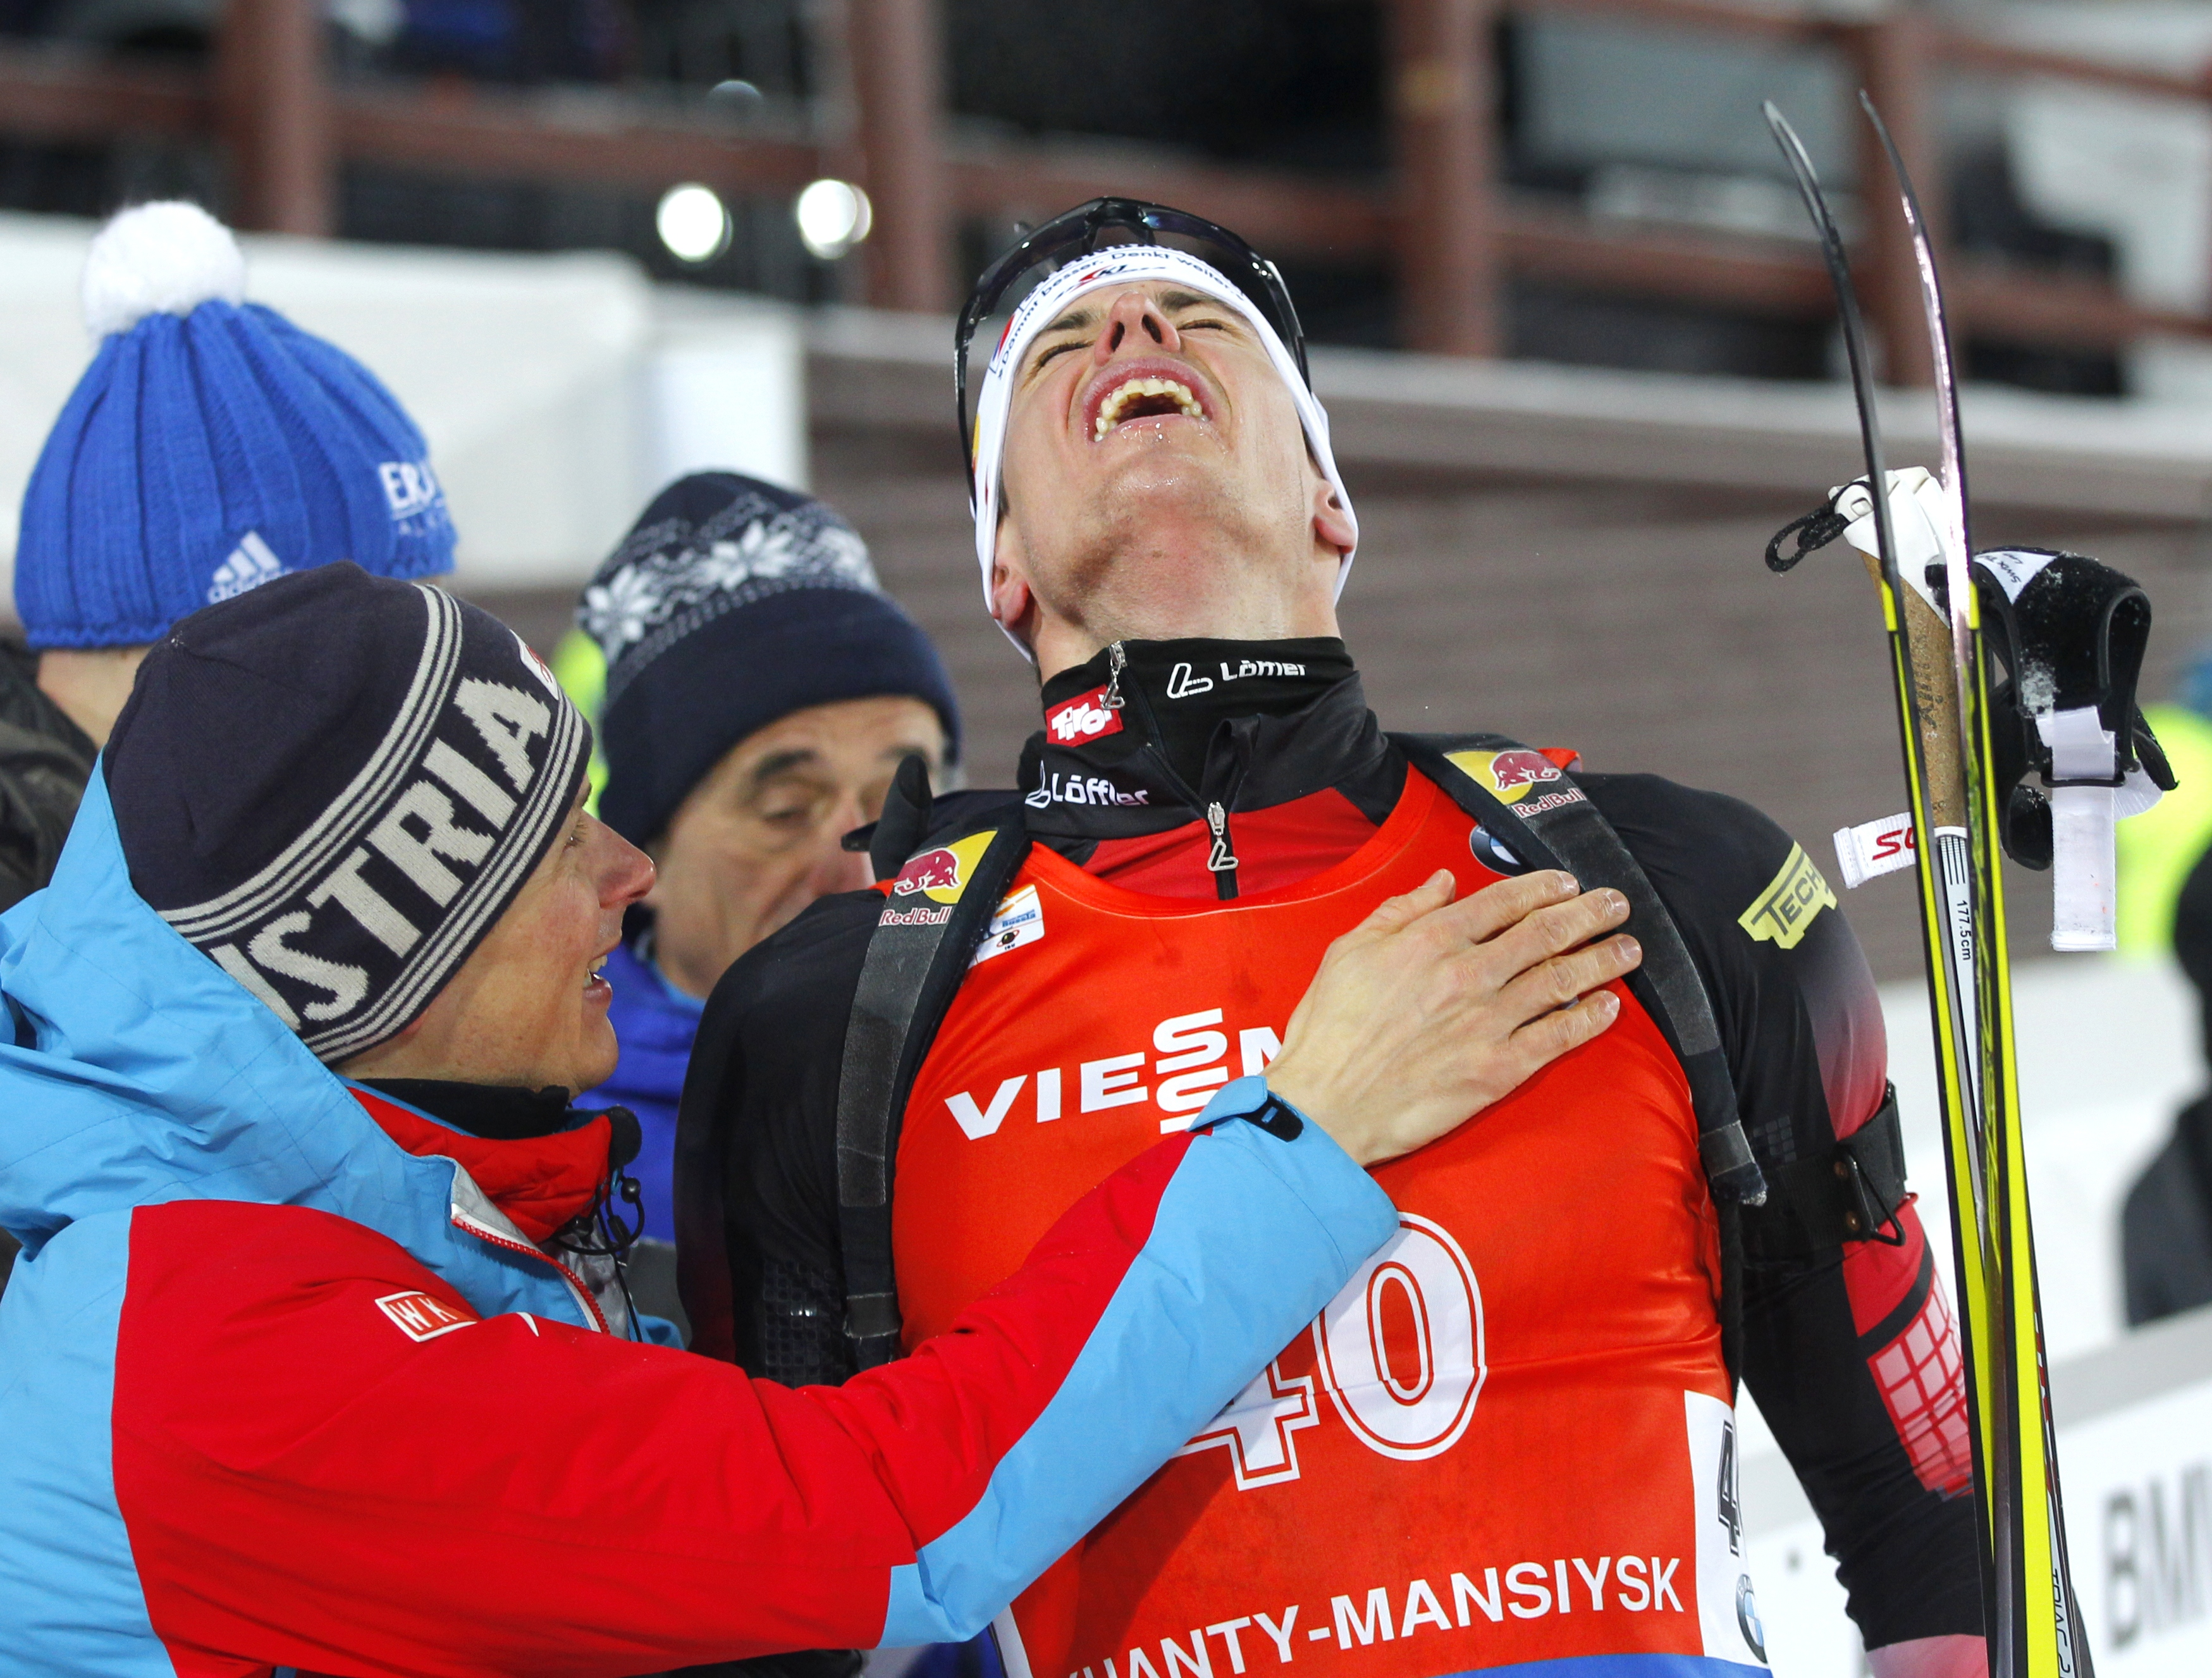 russia_biathlon_world_cup-c198b959715943_r8540.jpeg